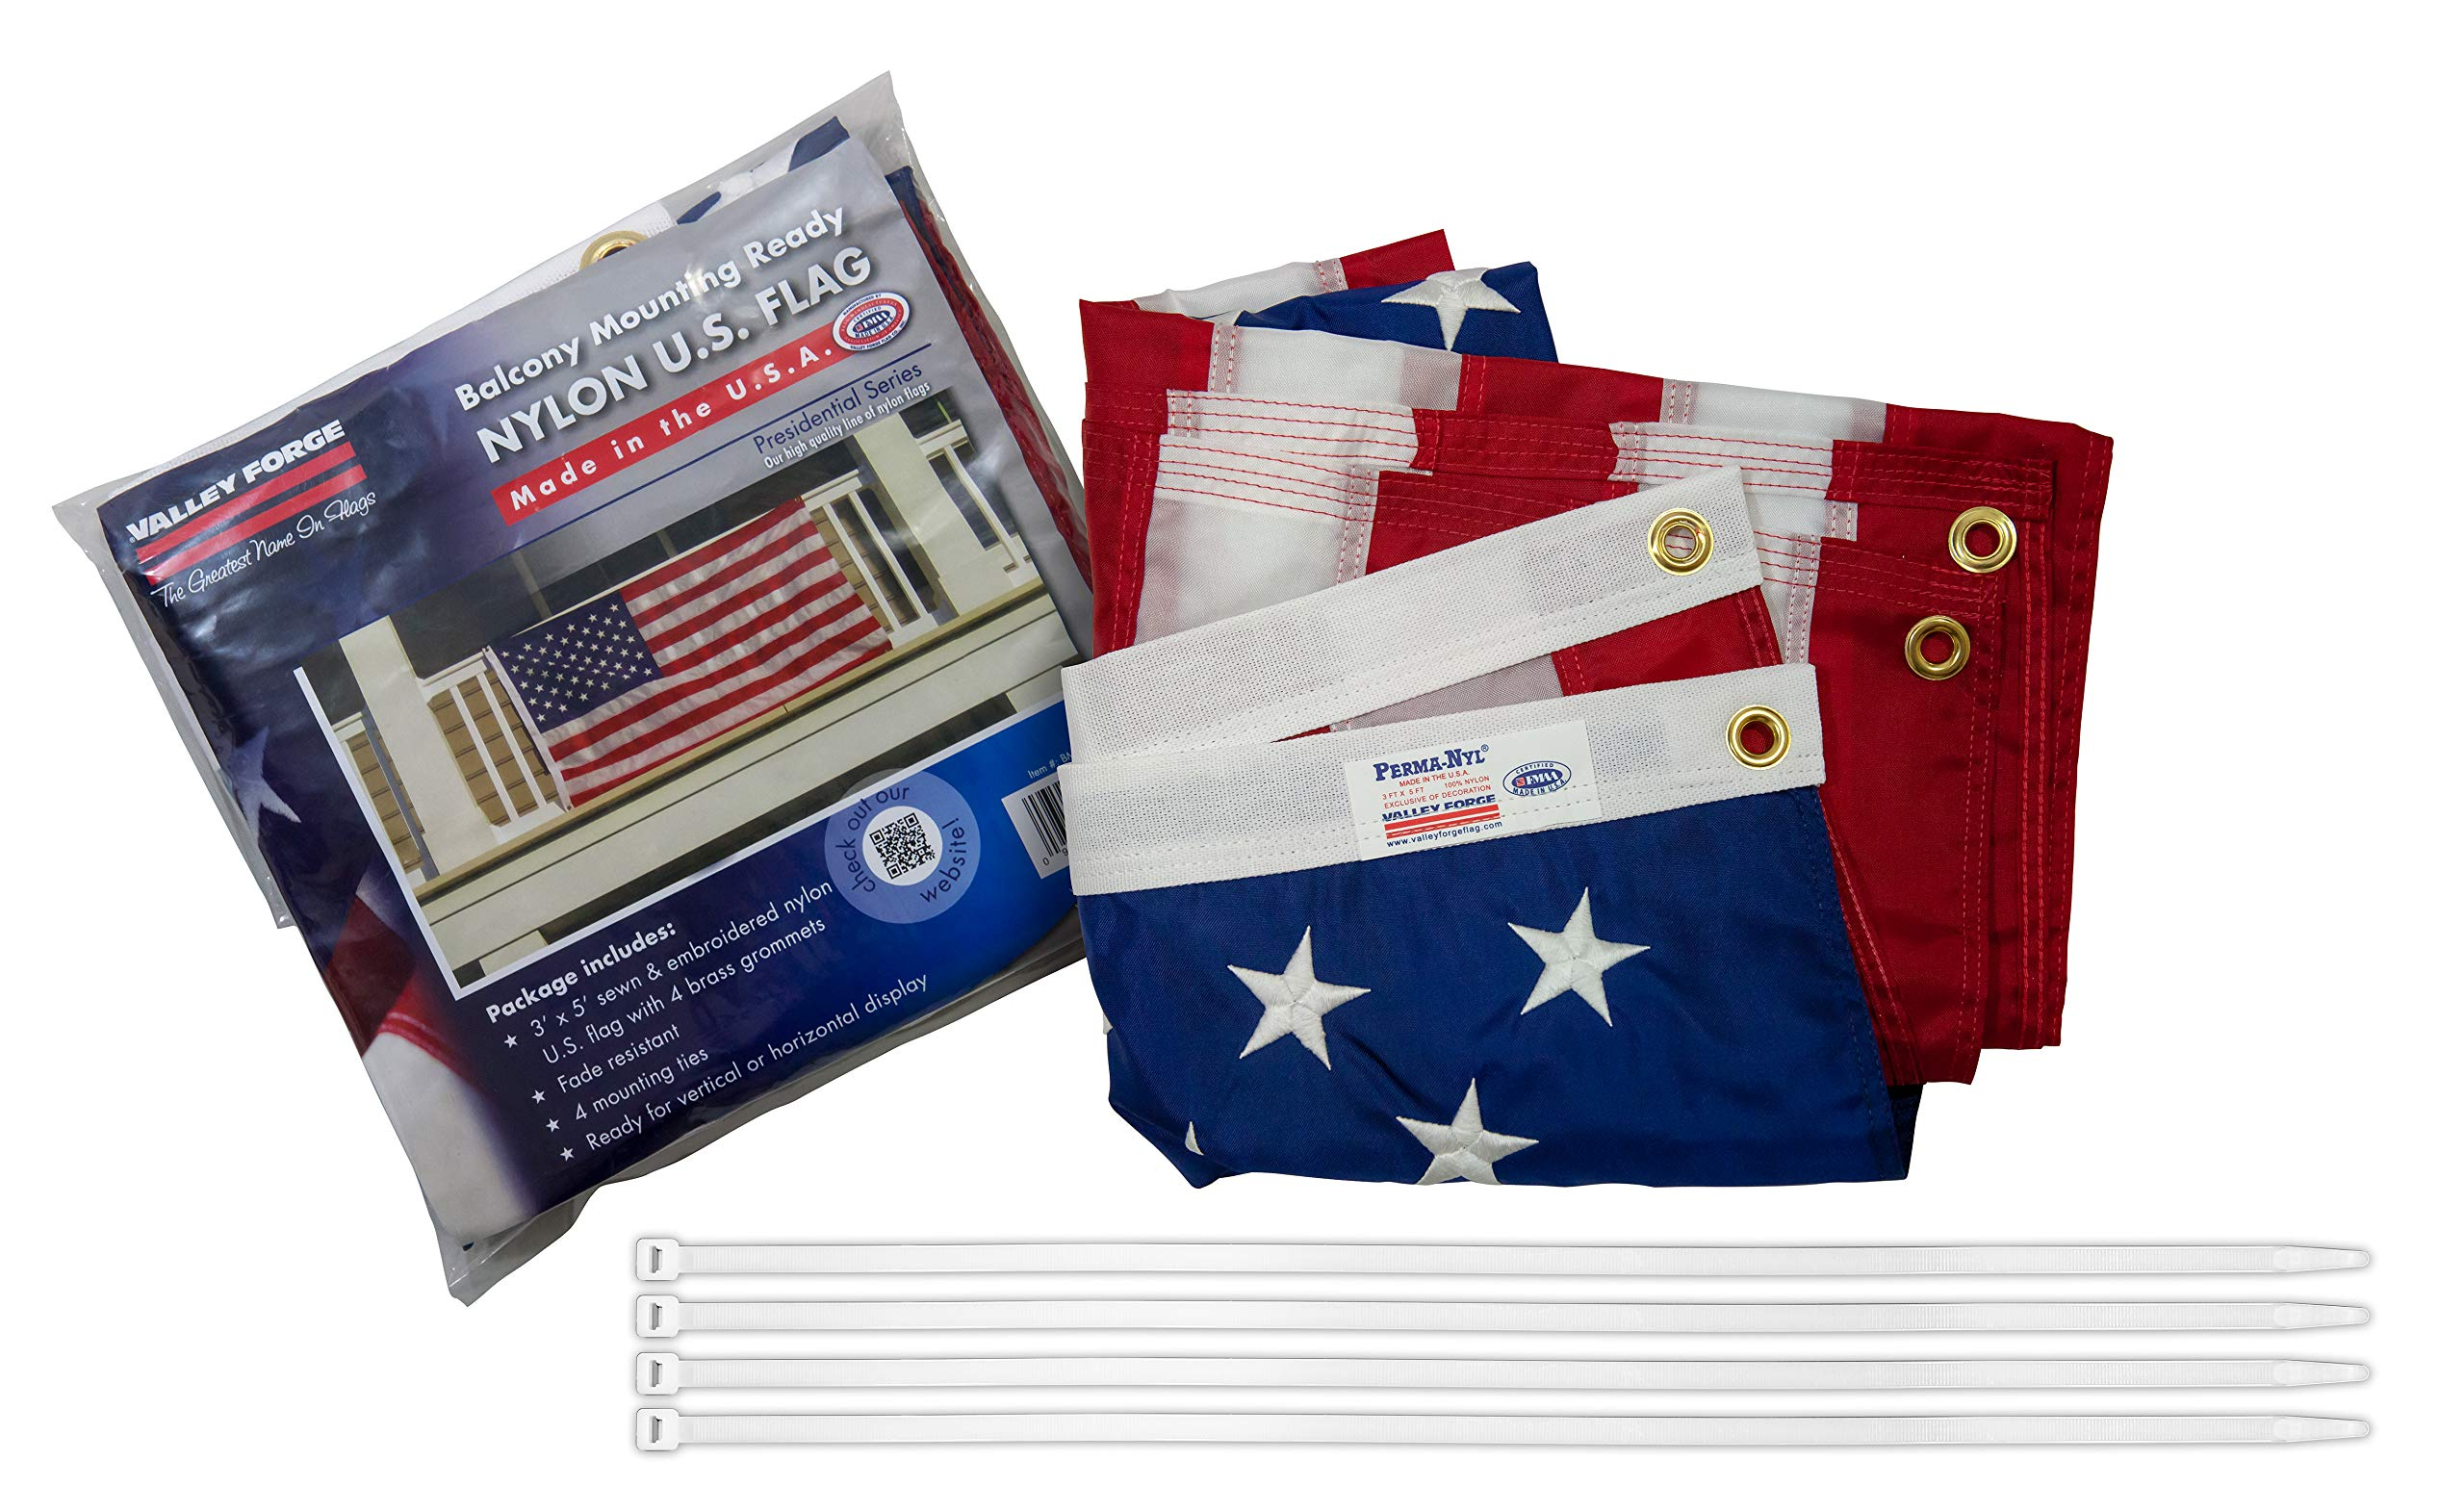 Valley Forge, American Flag Kit, Nylon, 3'x5', 100% Made in USA, Balcony Mounting Kit, Heavy Duty Brass Grommets, Fasteners